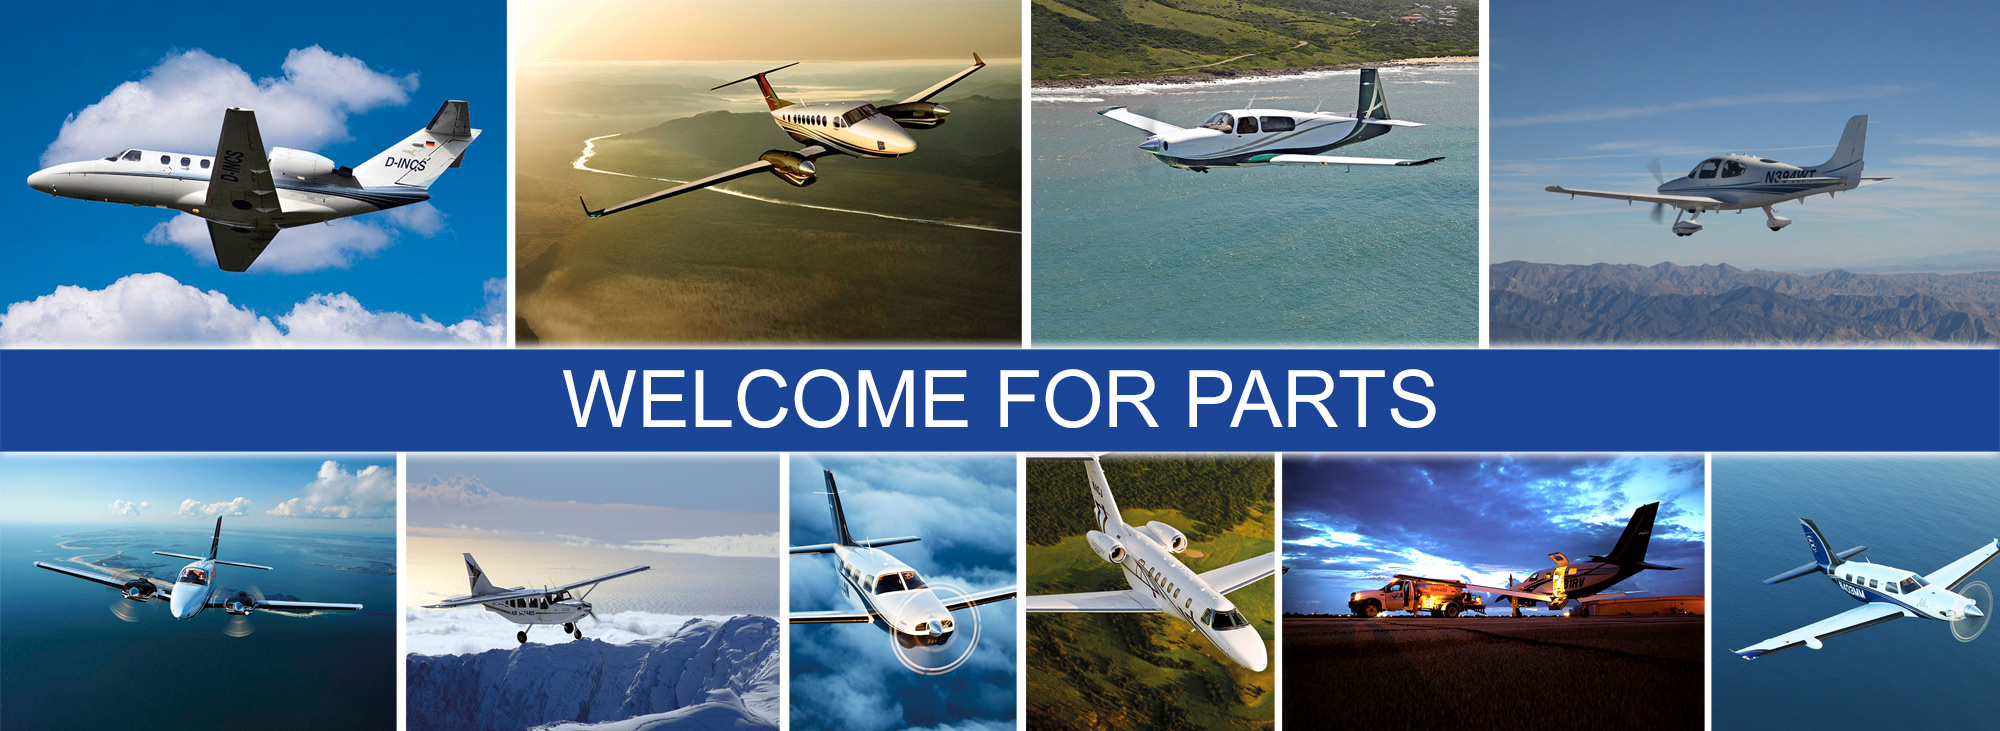 Welcome at GlobalAviation24.com!